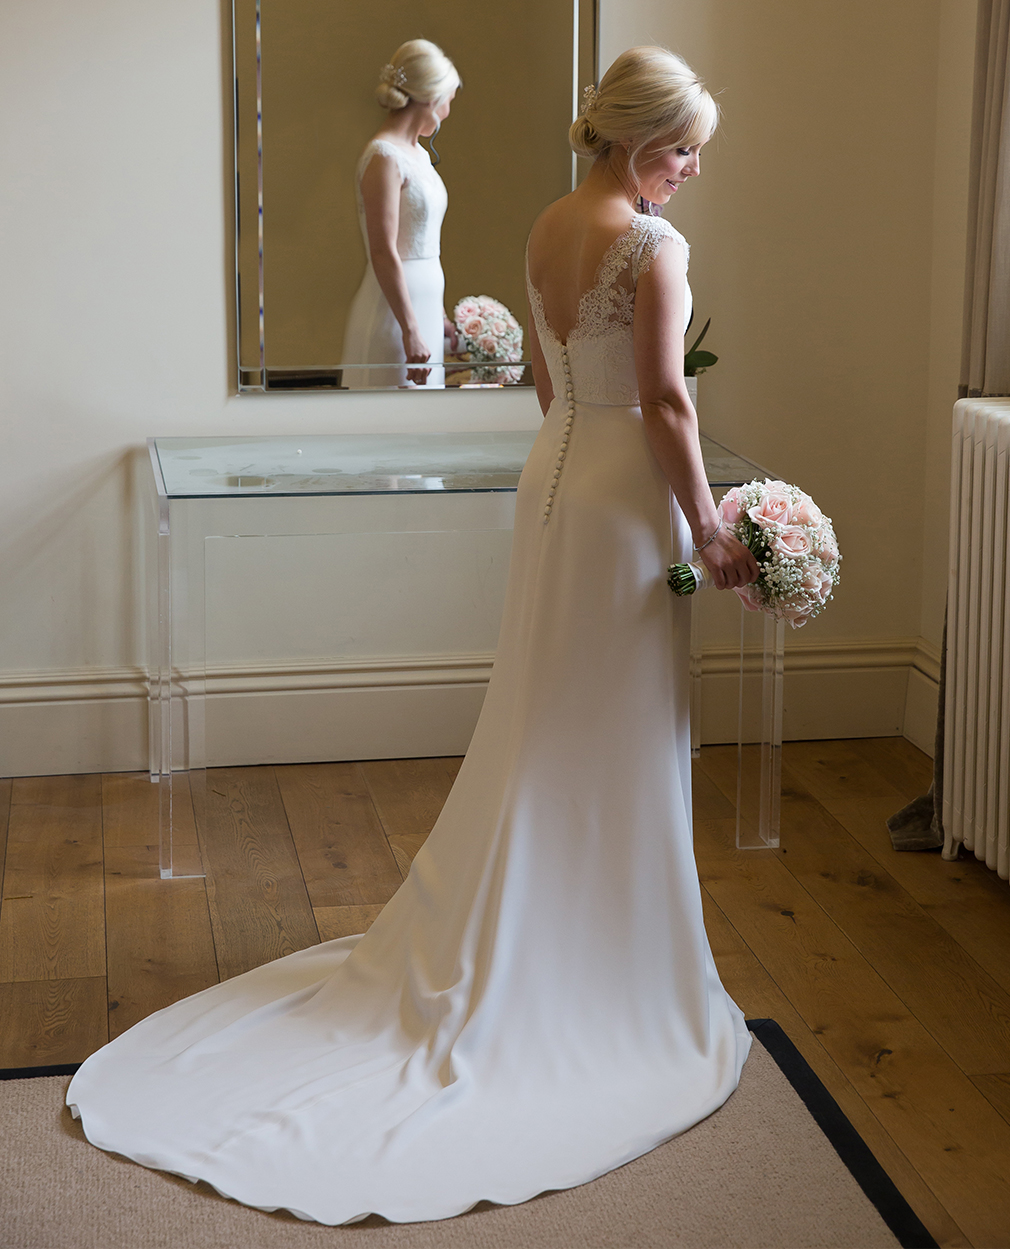 The bride stands in her wedding dress holding a bouquet of wedding flowers – wedding venues Essex